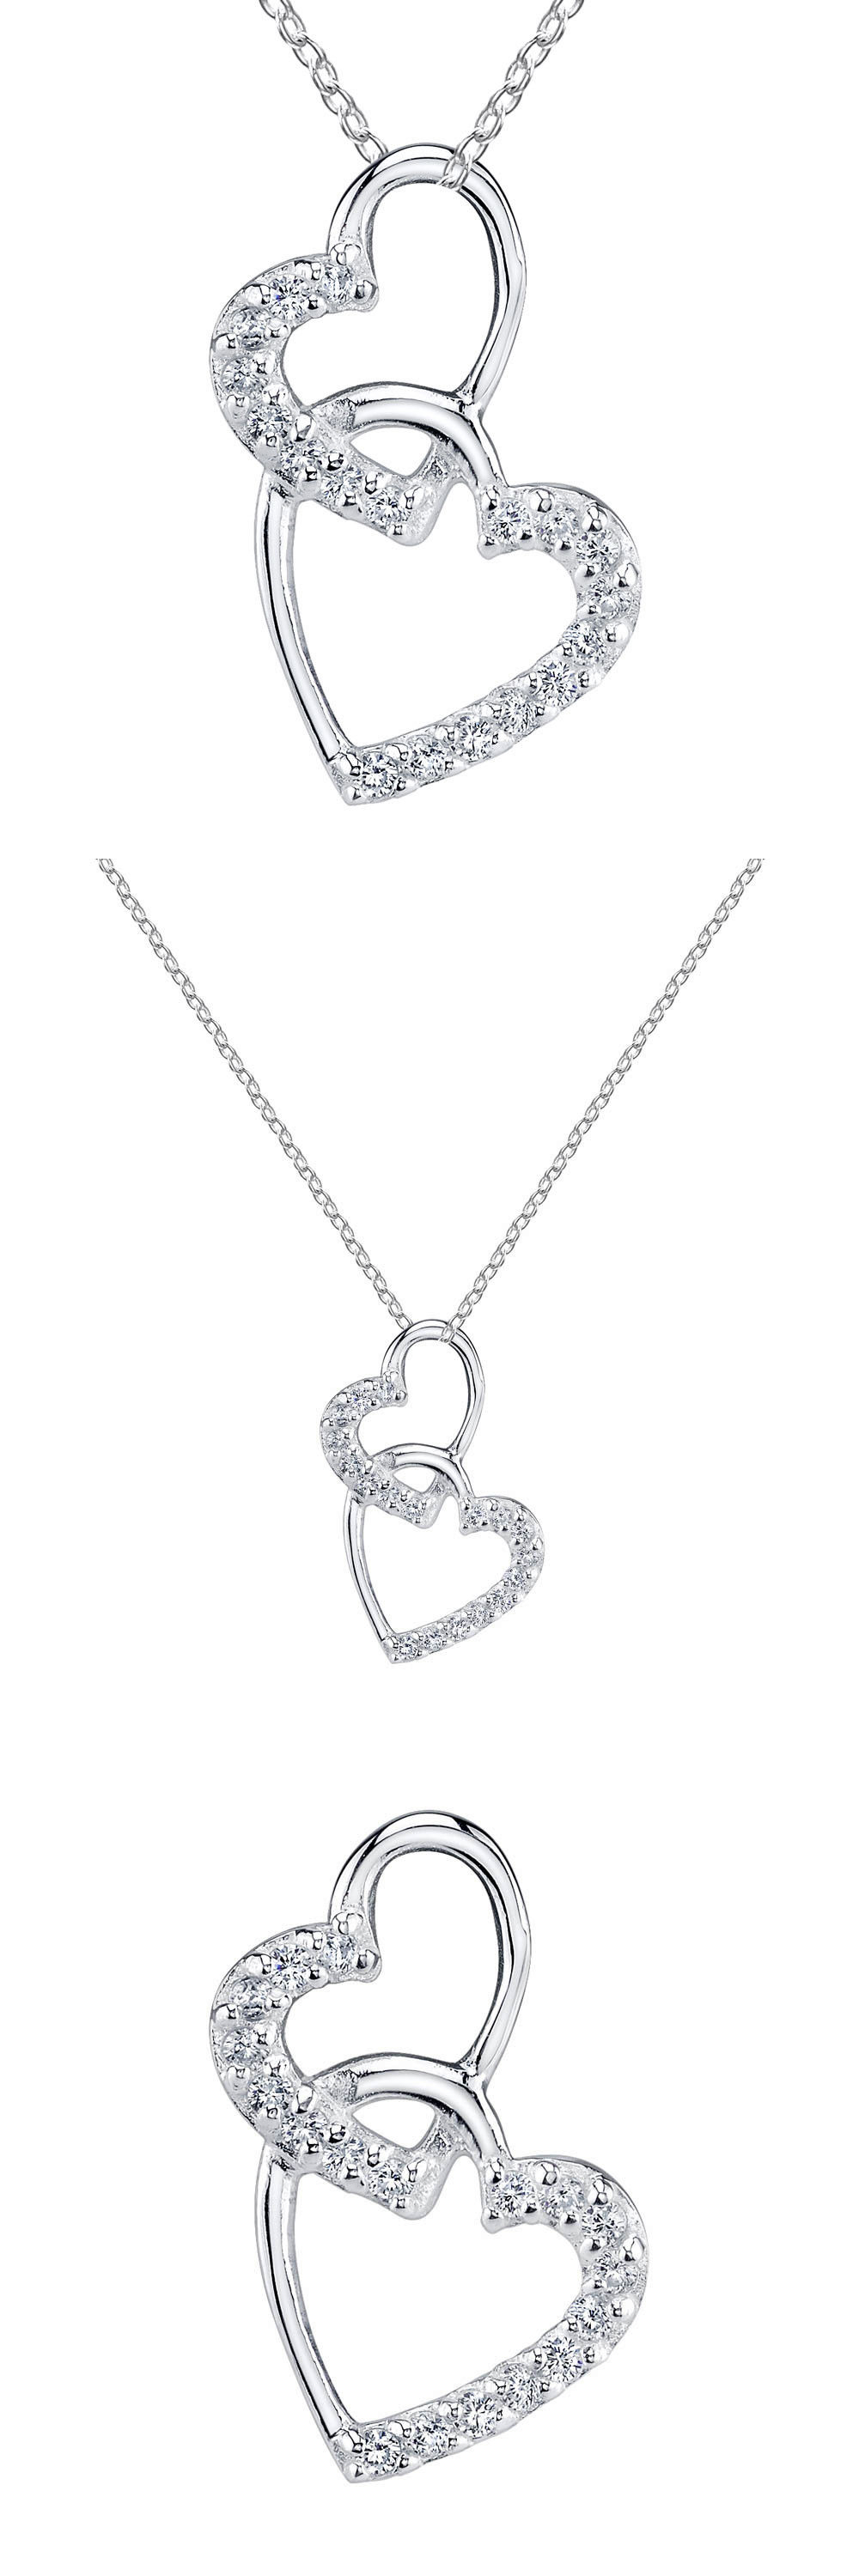 Valentine Gifts: Minxwinx Double Heart Sterling Silver And Cubic Zirconia Necklace Valentine Gift -> BUY IT NOW ONLY: $18.7 on eBay!